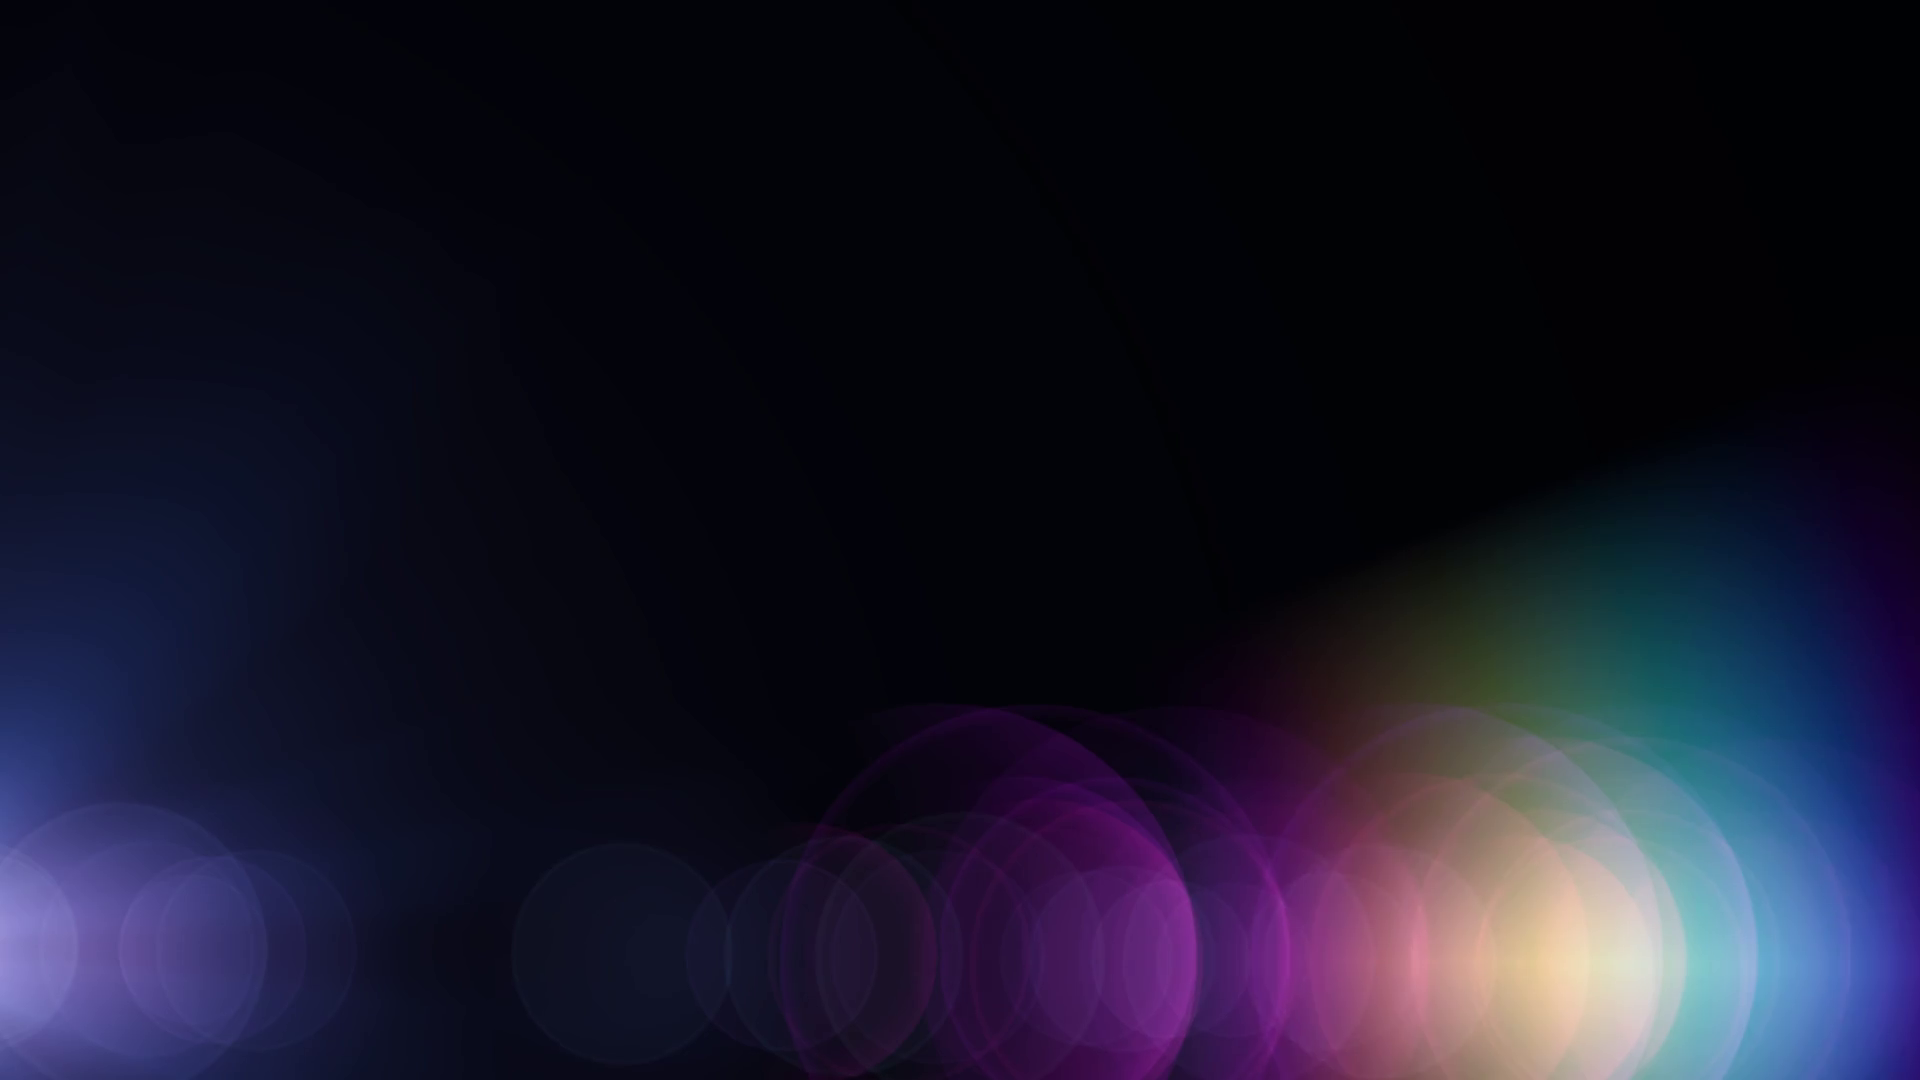 Light flare png rainbow. Vertical side moving lights